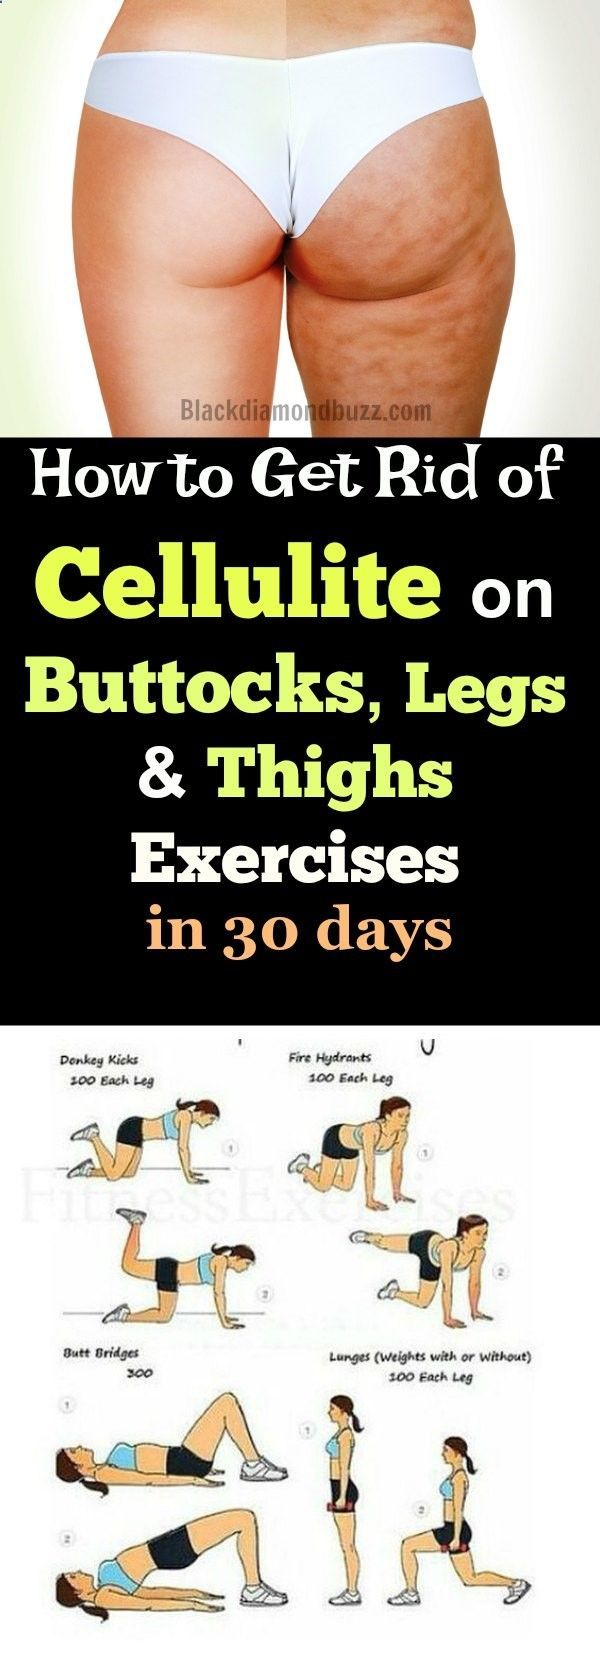 How to Get Rid of Cellulite on Buttocks, Legs and Thigh Exercises in 30 Days. Summer is here, everybody wants to look sexy on the beach and nobody want to display those stubborn cellulites on thighs and bum. So you are not alone here, if you are looking for exercises to get rid of cellulite on buttocks and thighs. Many people including male and females suffer from dimple-causing fats on hips. The problem is worse among the females. According to a Cornell University research, almost 98%…